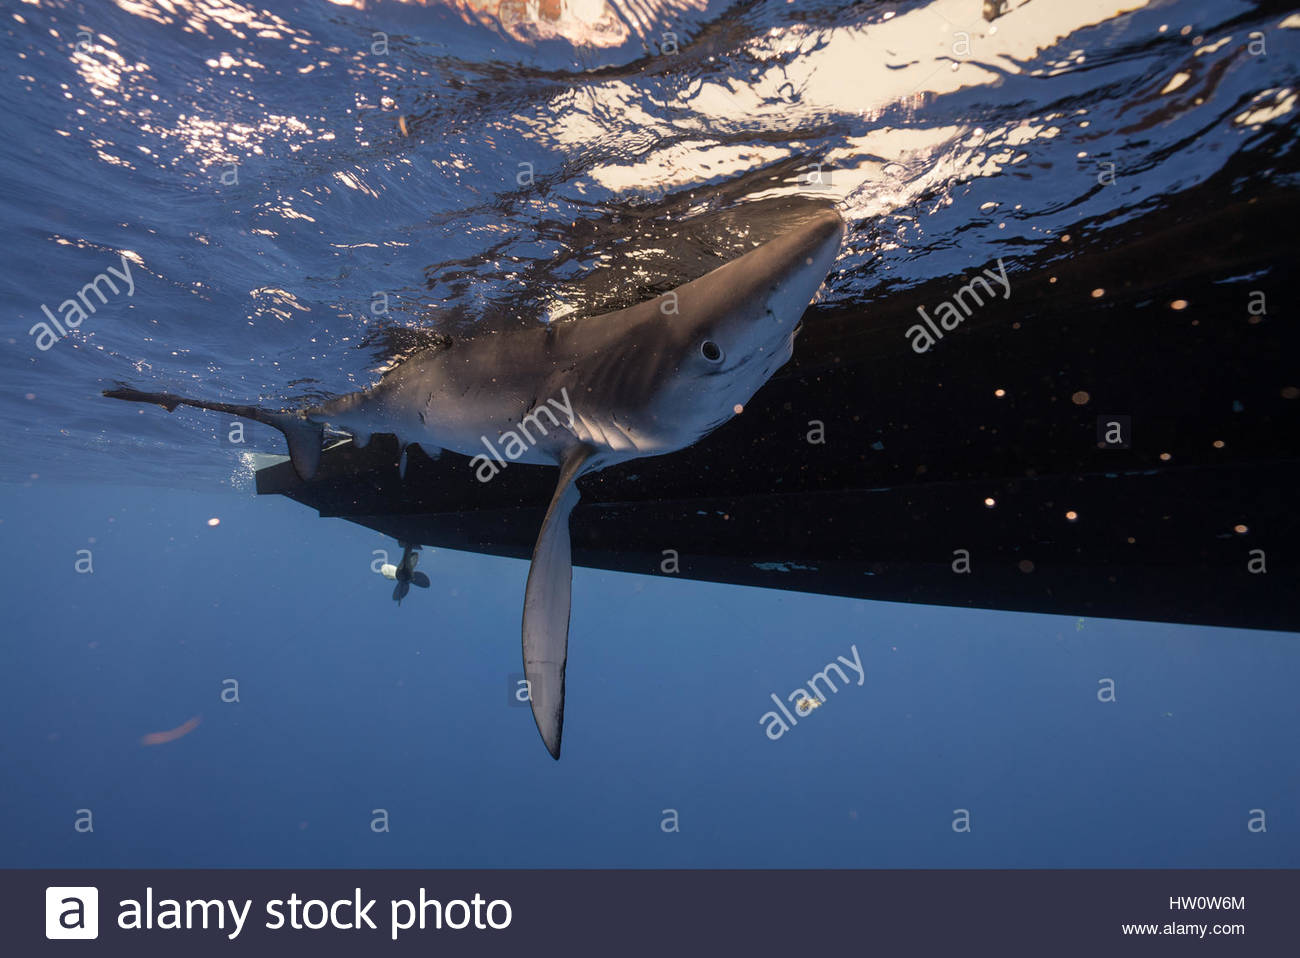 A blue shark being tagged from the side of a boat off of Cat Island in the Bahamas. Stock Photo